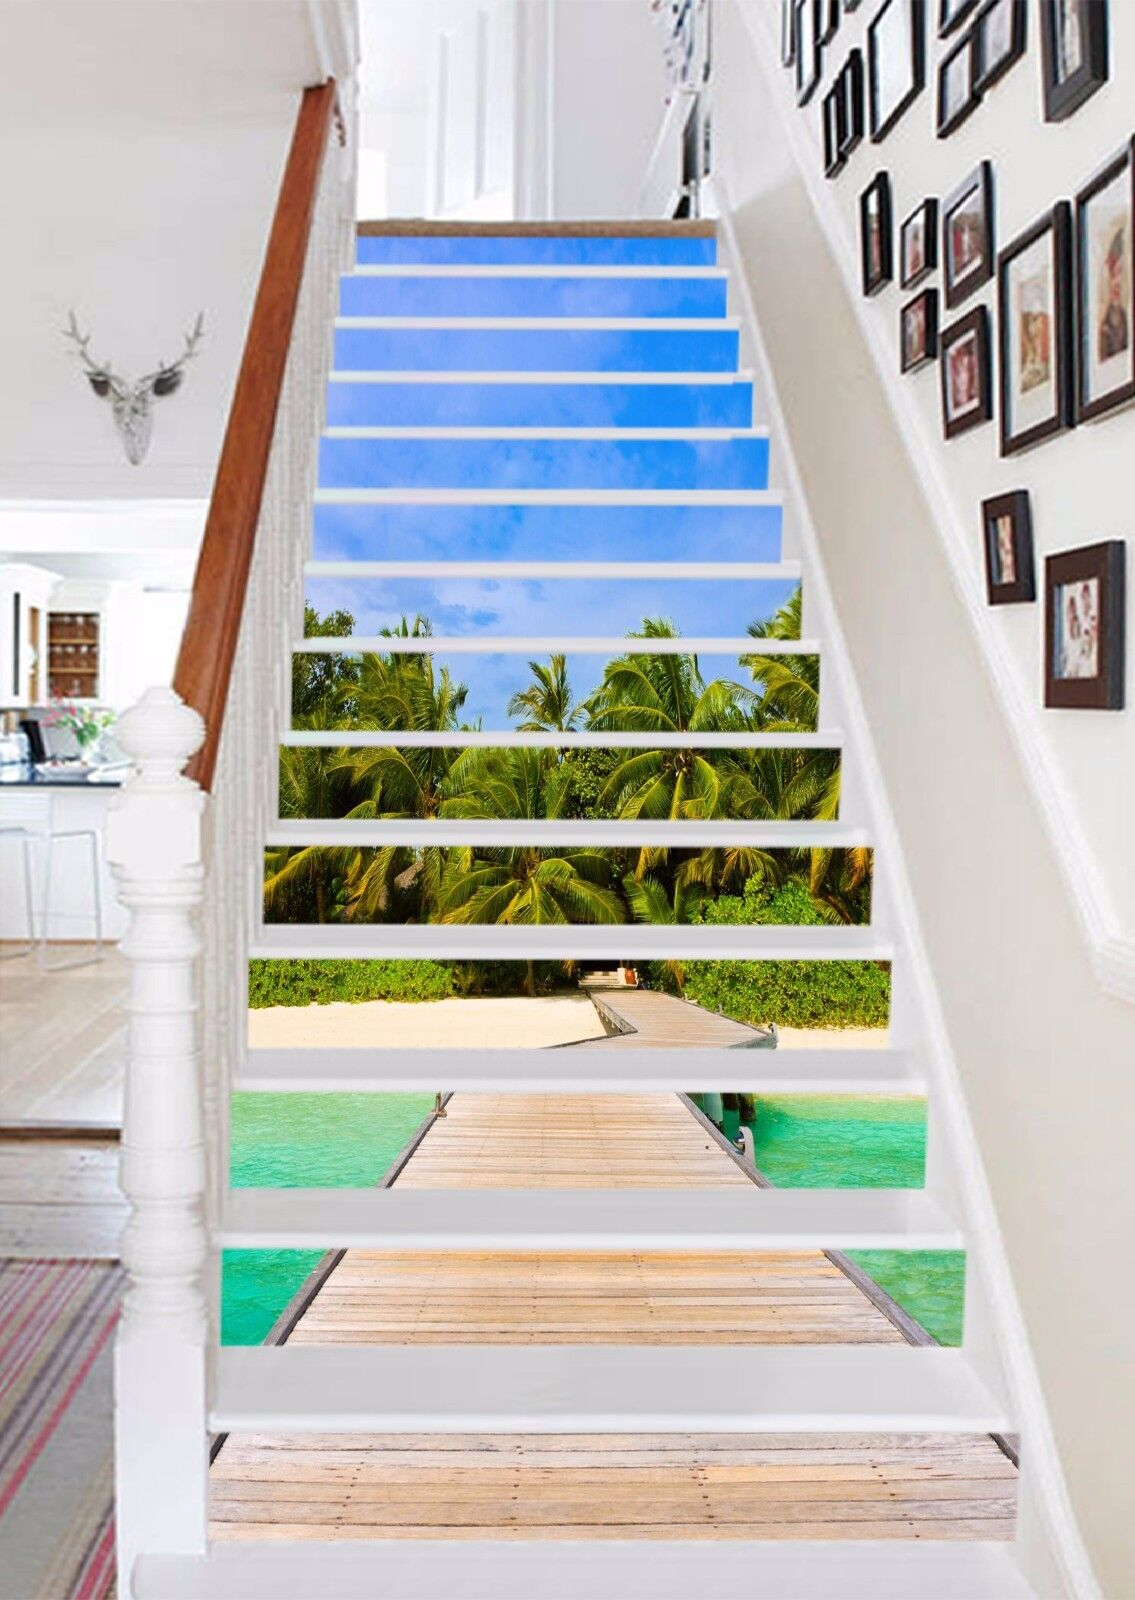 3D Sky Beach 117 Stair Risers Decoration Photo Mural Vinyl Decal Wallpaper UK